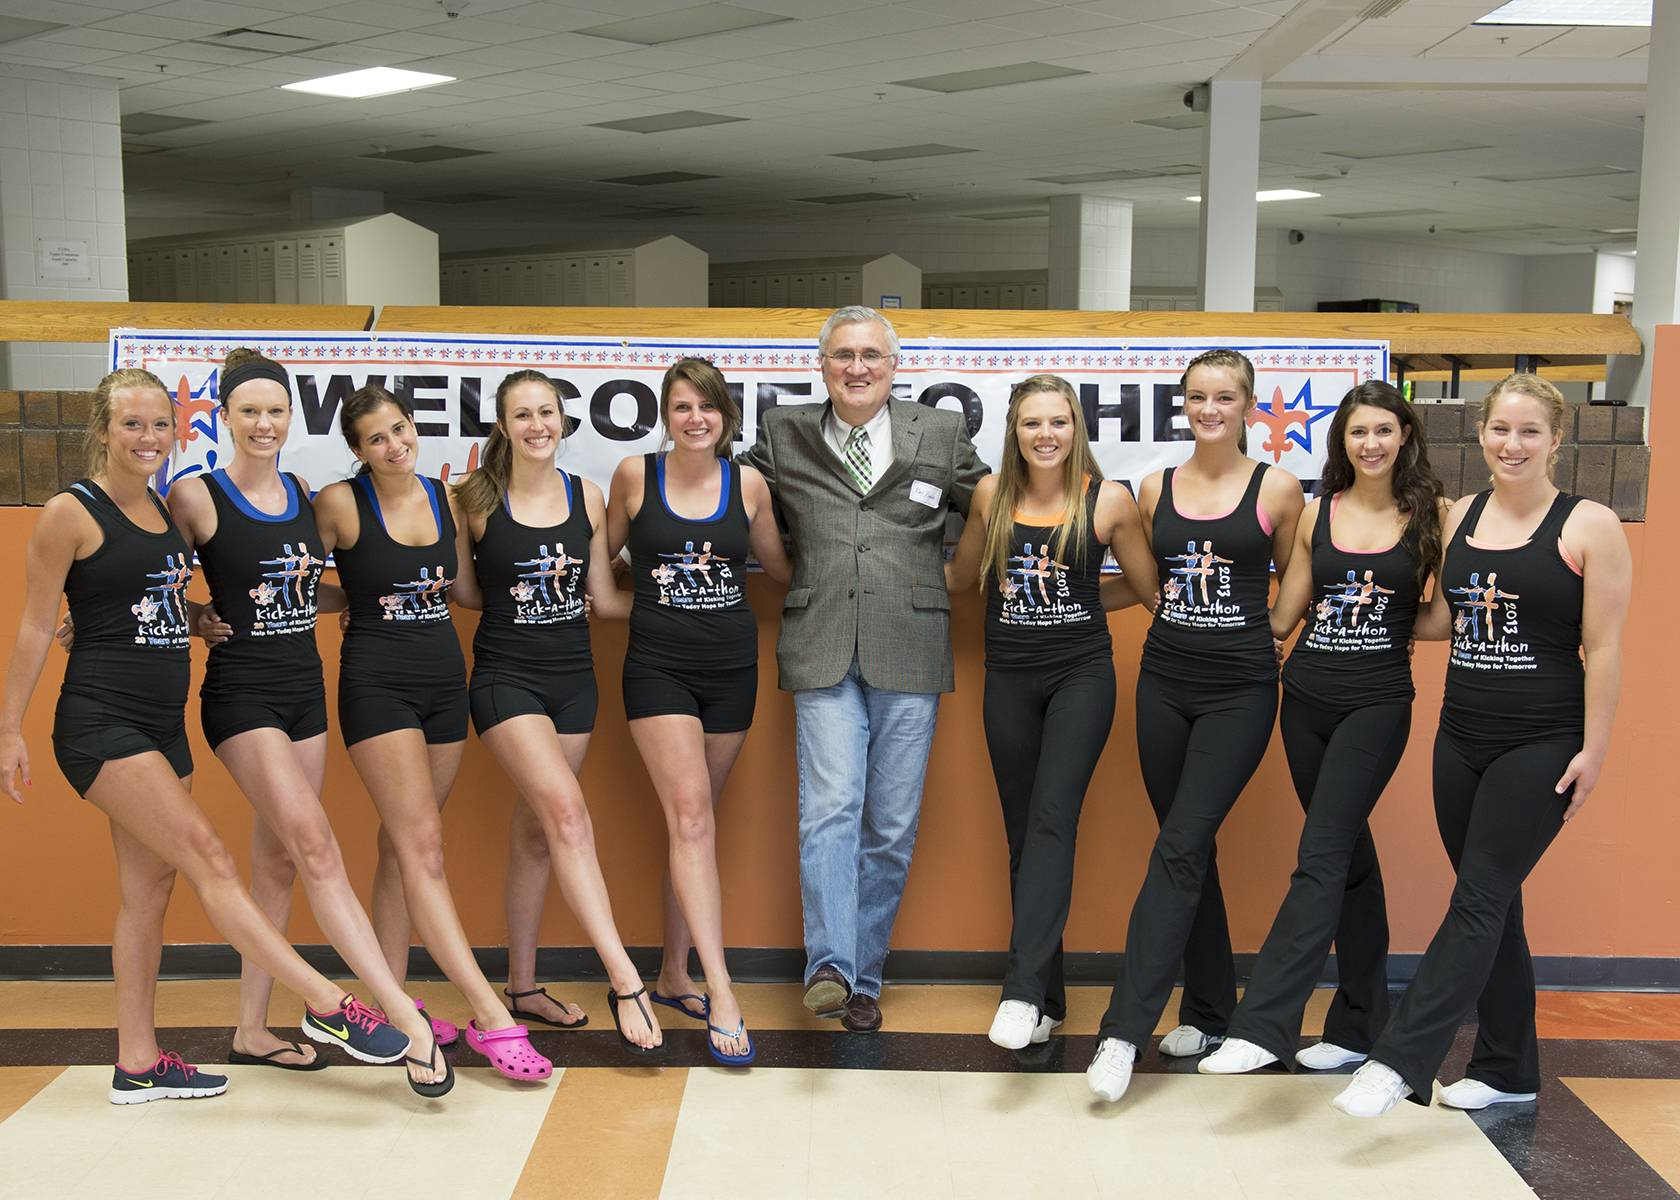 St. Charles North drill team seniors Alison Meisenheimer, Jamie Beaulieu, MaryKate Purcell, Kassidy Ams, Lexi Artman, St. Charles Mayor, Ray Rogina, St. Charles East drill team seniors Tara Willing, Rhyleigh Keef, Rachael Manley and Maddie Culbertson